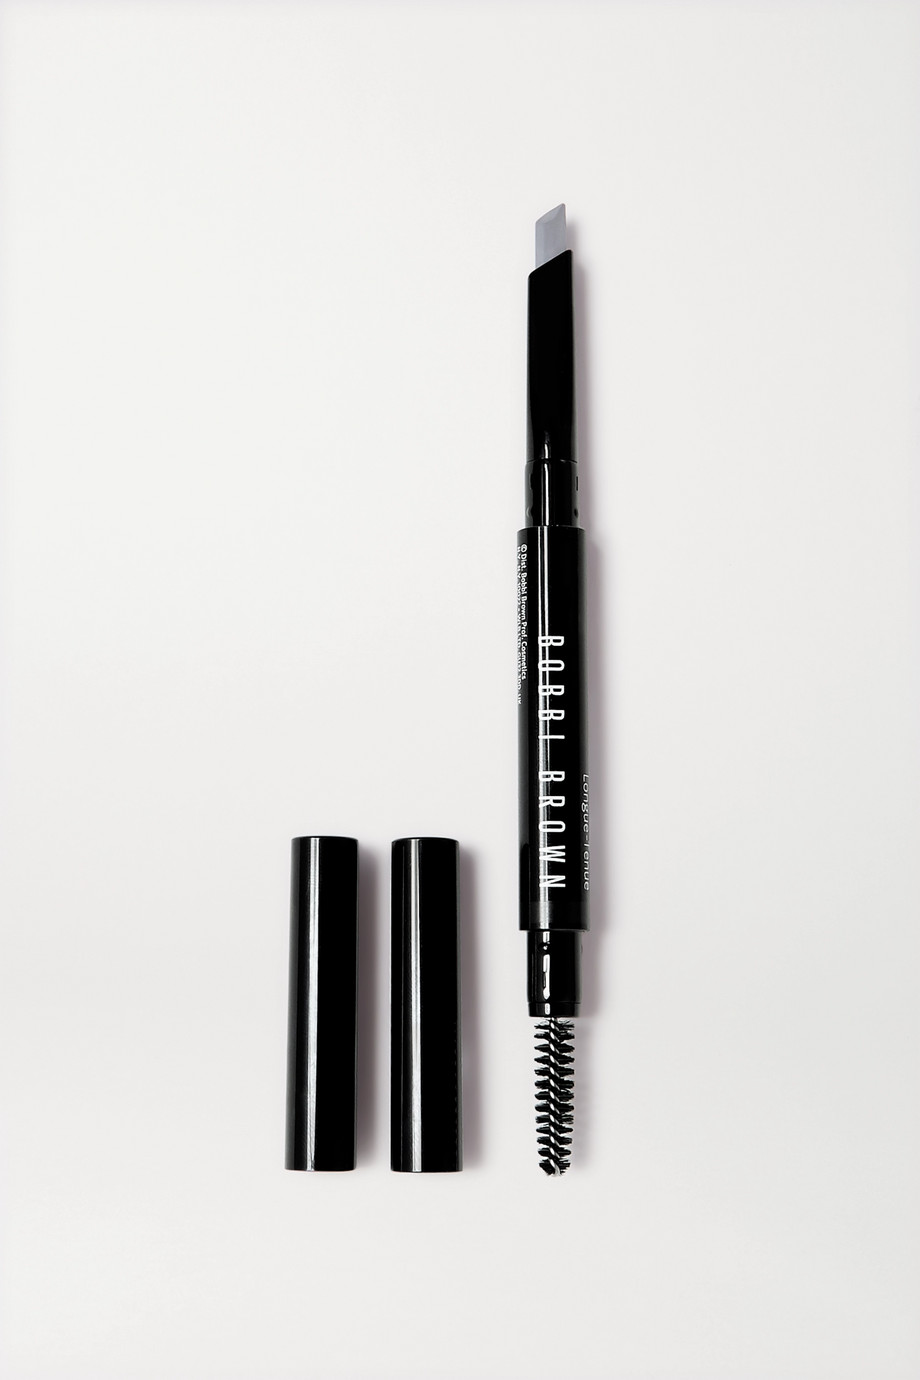 Bobbi Brown Perfectly Defined Long-Wear Brow Pencil - Soft Black